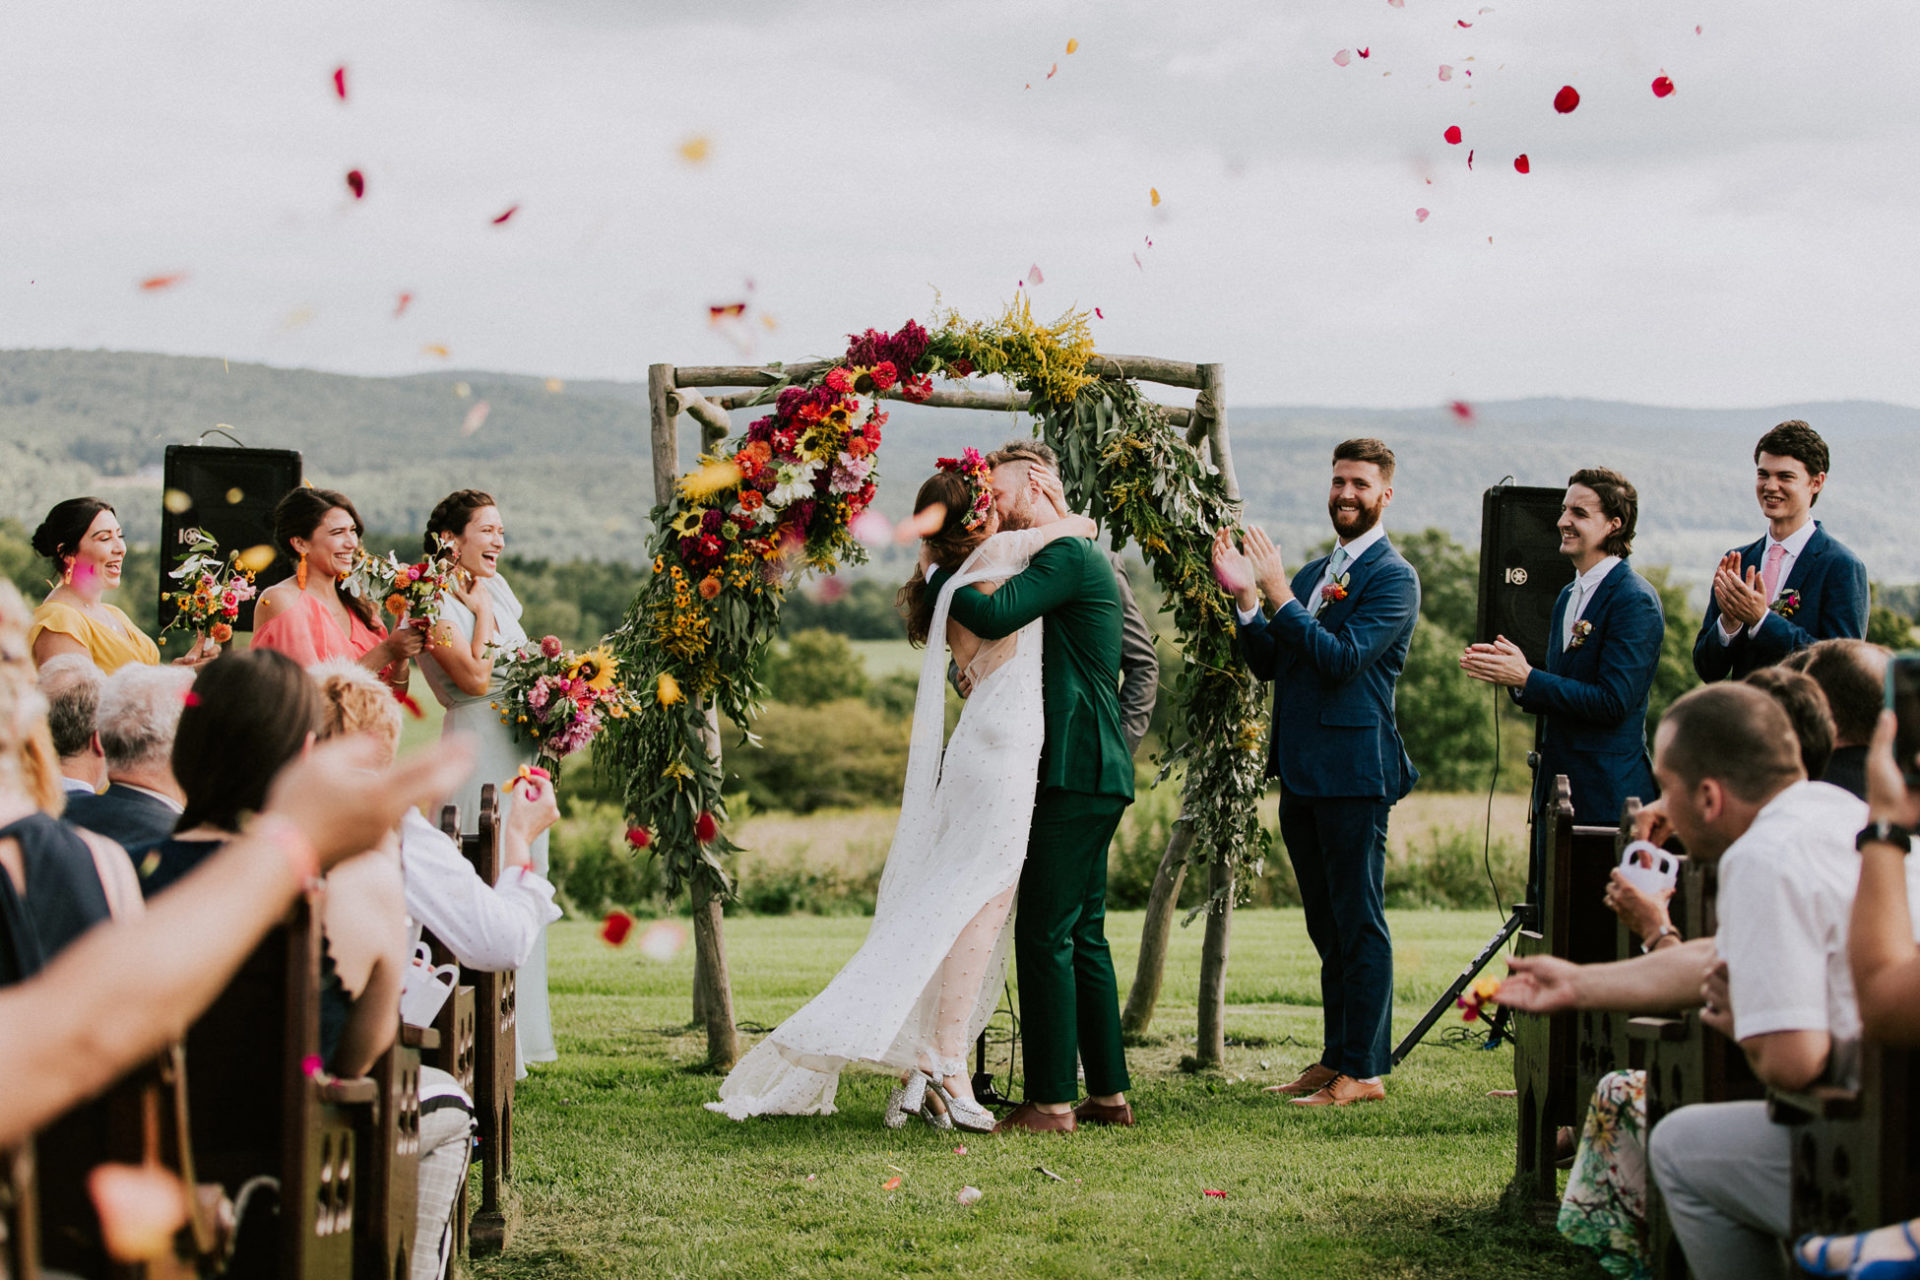 best-top-los-angeles-destination-wedding-photographer-hipster-modern-quirky-editorial-romantic-epic-43-gilbertsville-farm-nyc-upstate-kiss-ceremony-throw